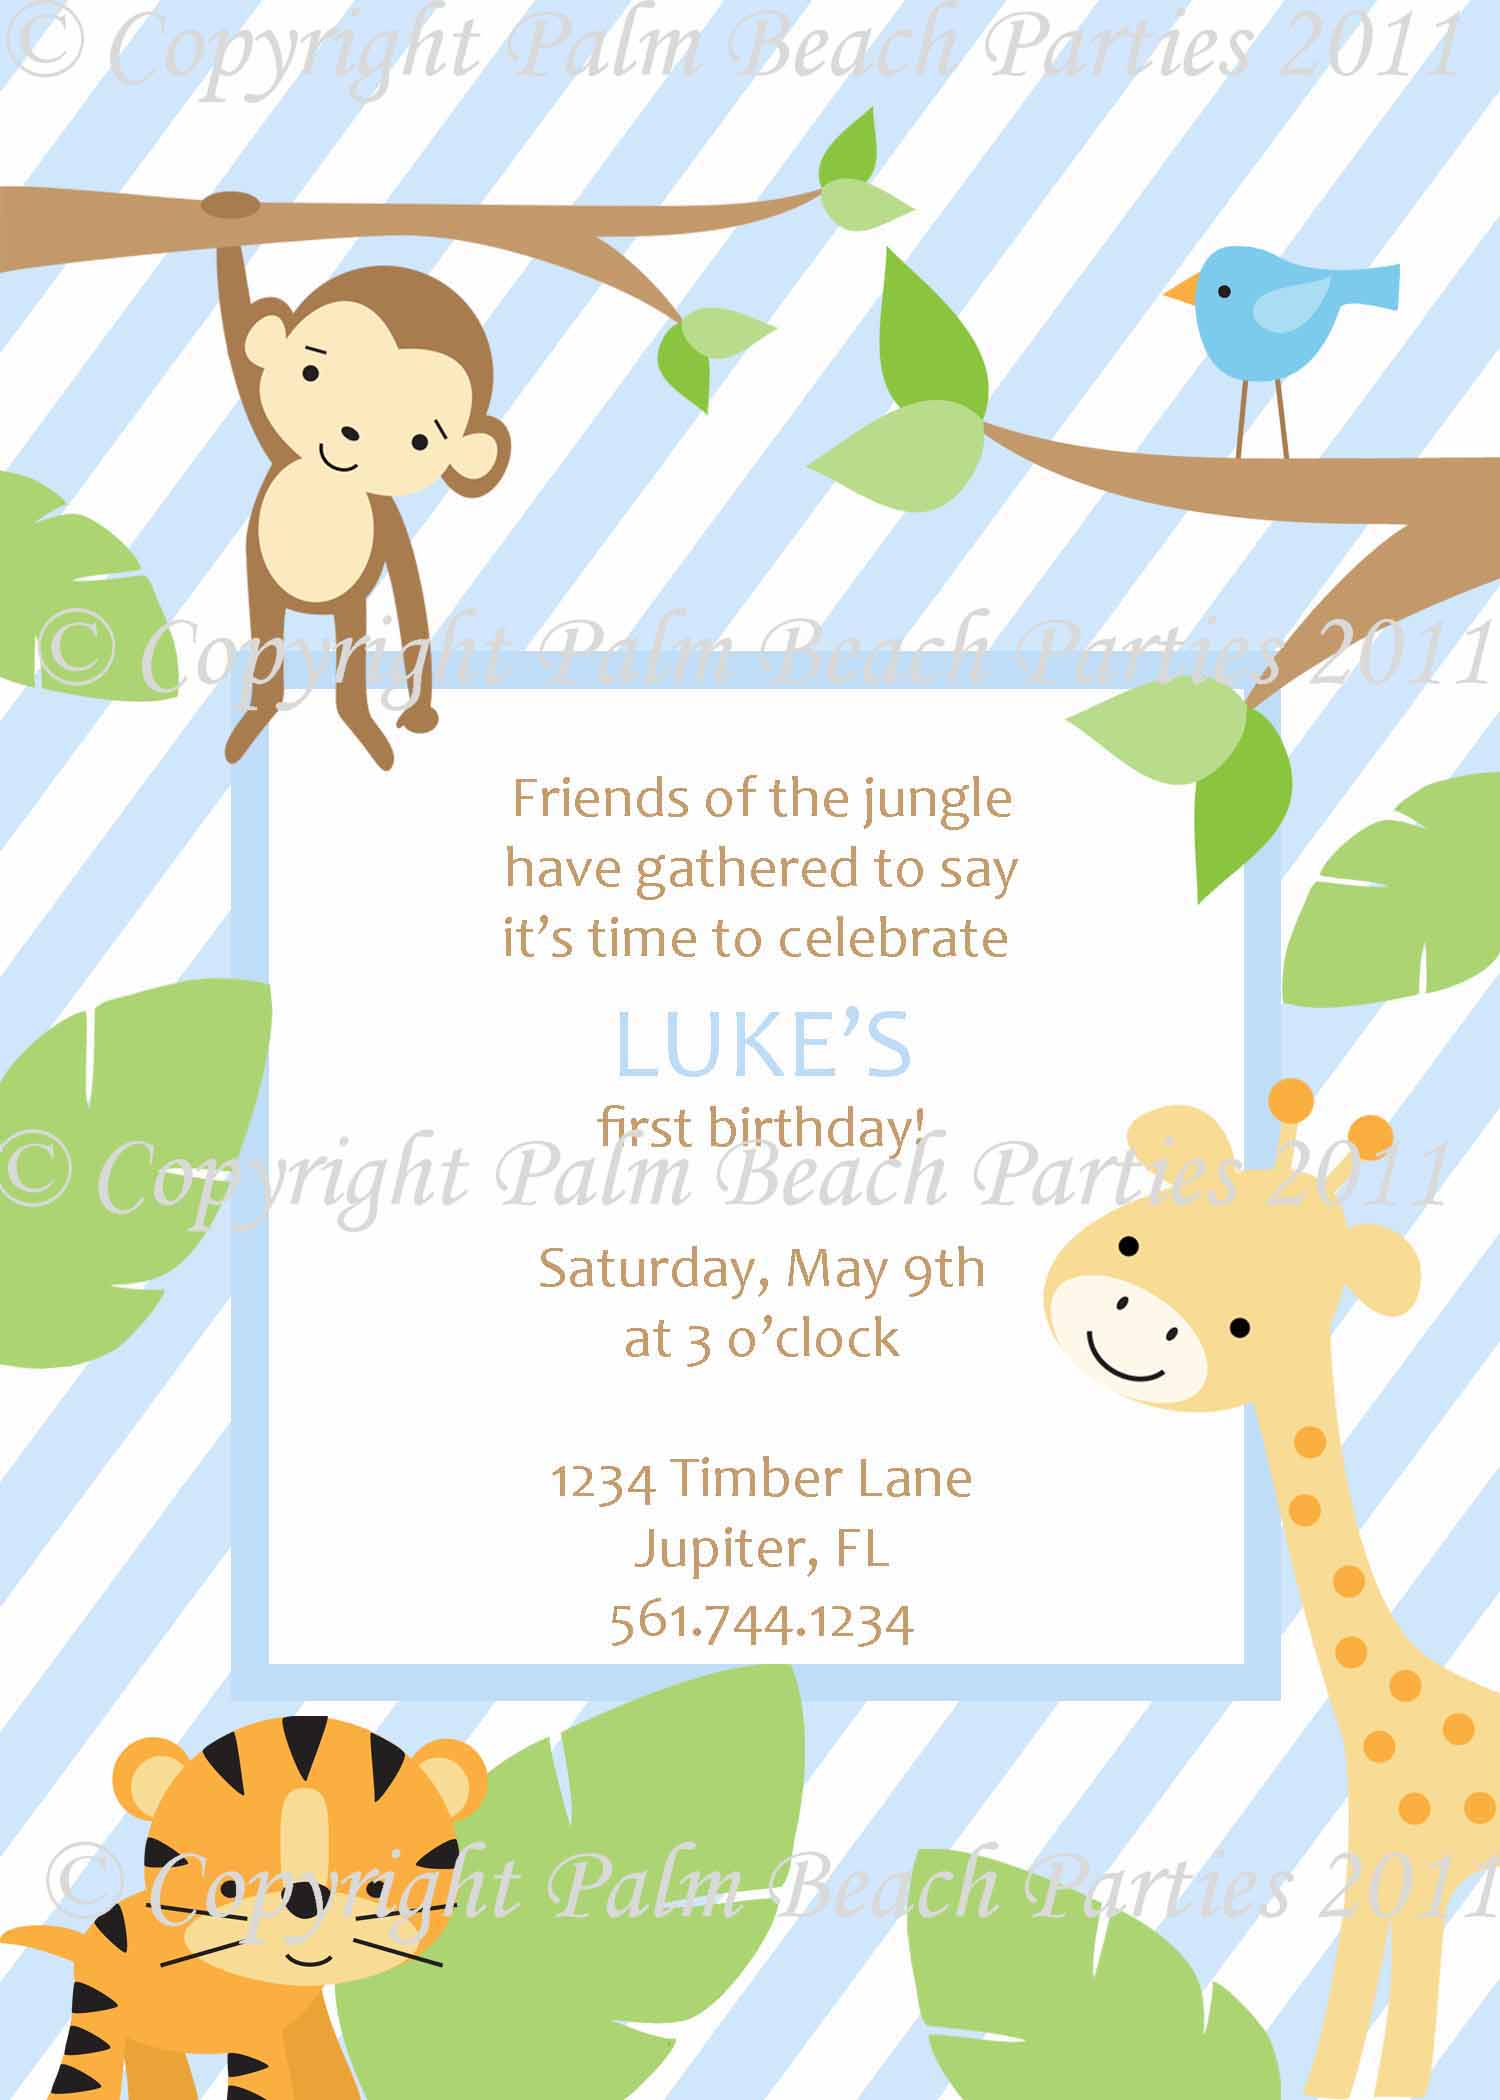 Jungle Party Invitation Wording Choice Image - Party Invitations Ideas